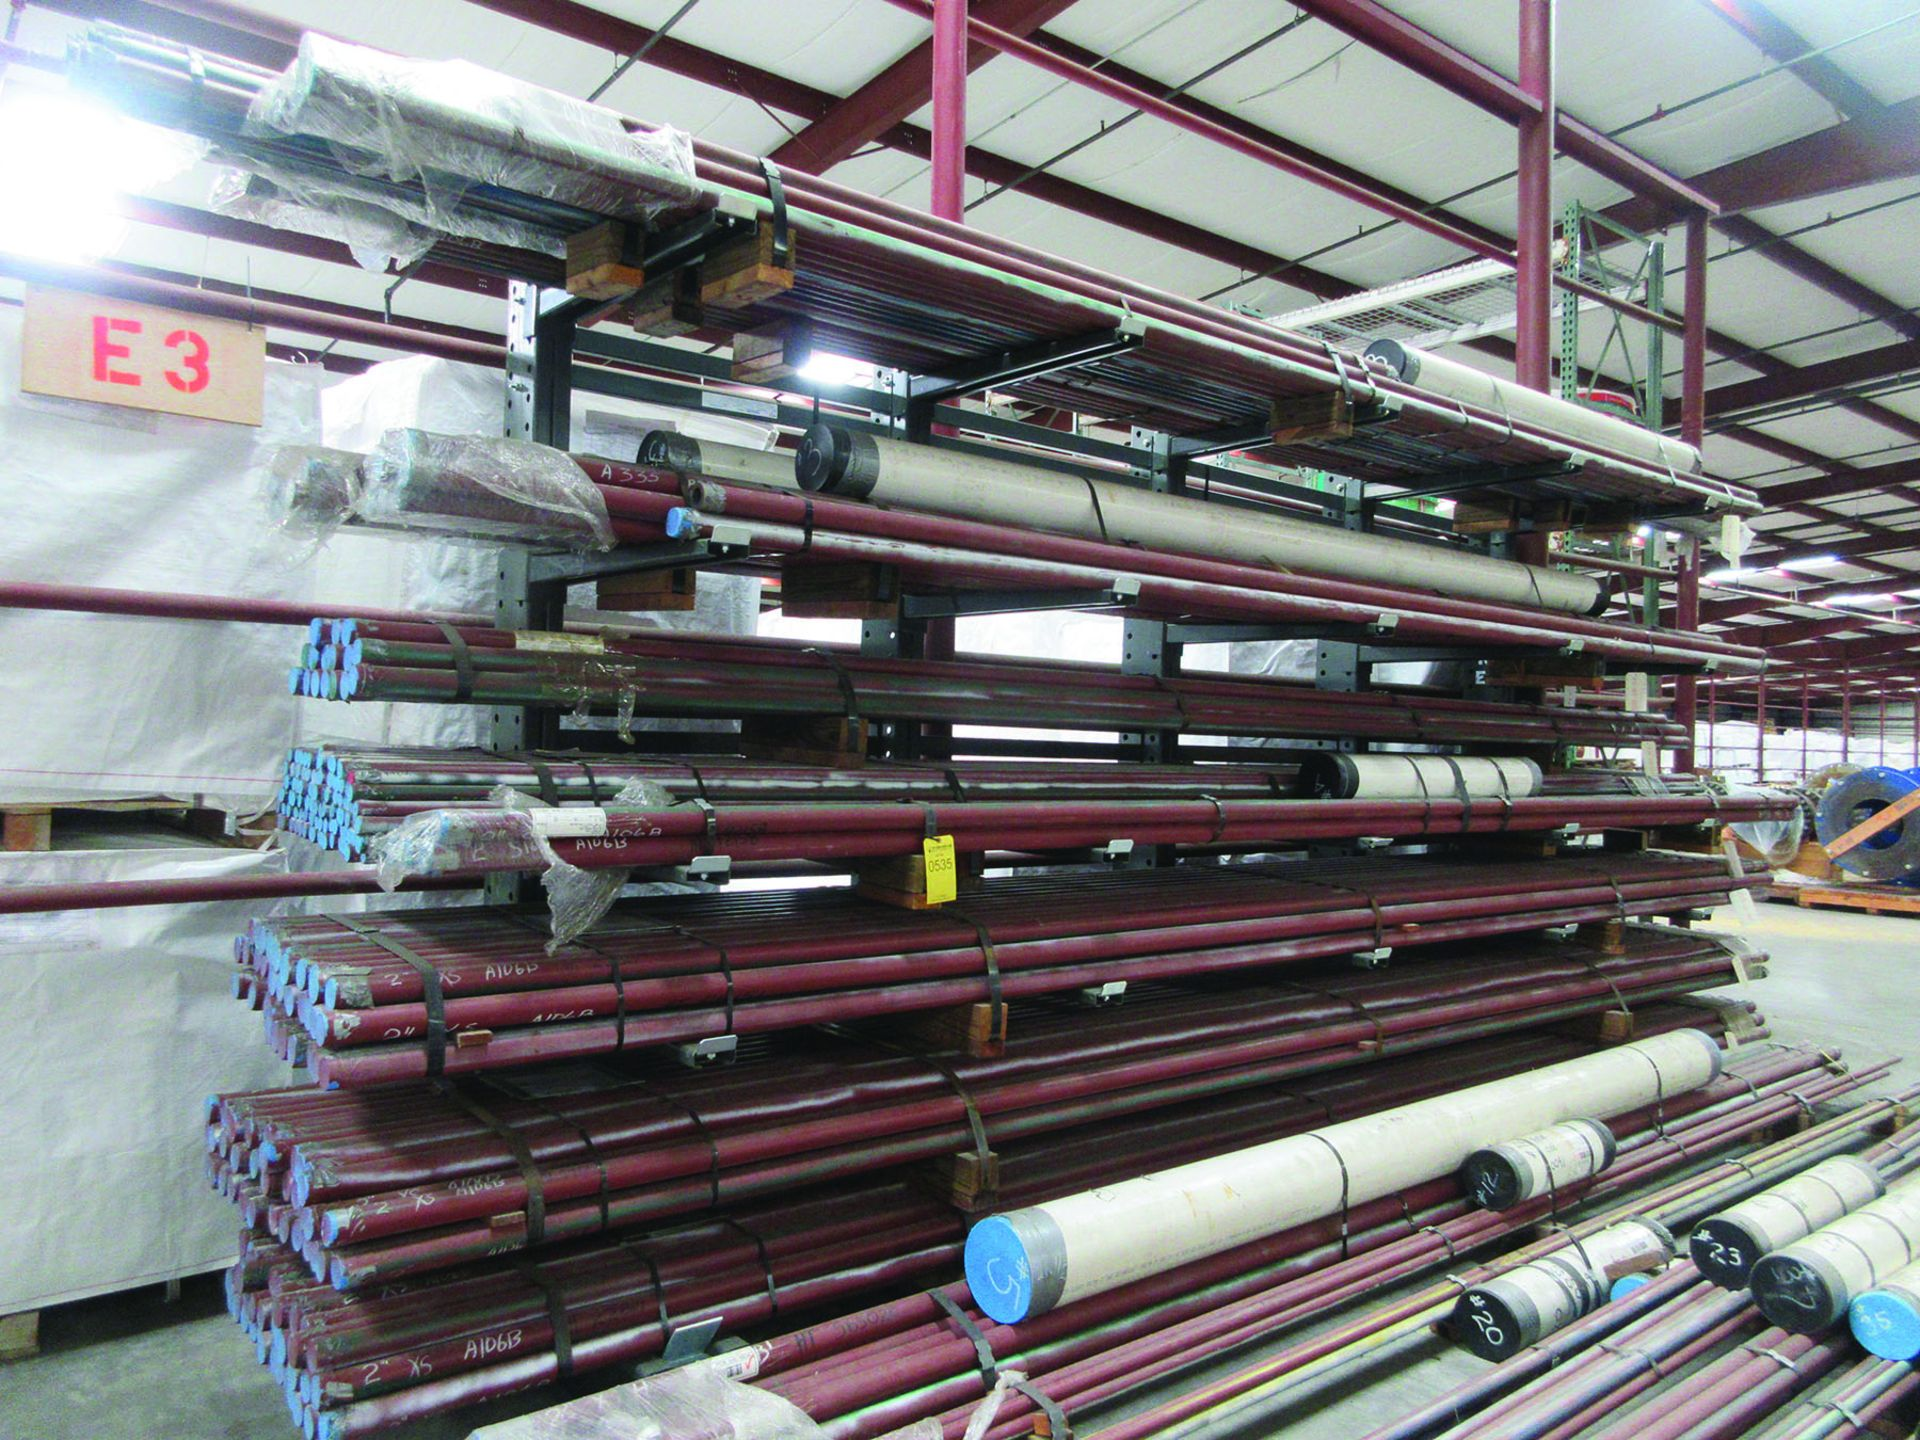 CANTILEVER RACK W/CONTENT: 120'' X 48'' X 202'', BUNDLES OF PIPE; 3/4'', 1'', 1 1/2'', 2'', MOST - Image 2 of 17